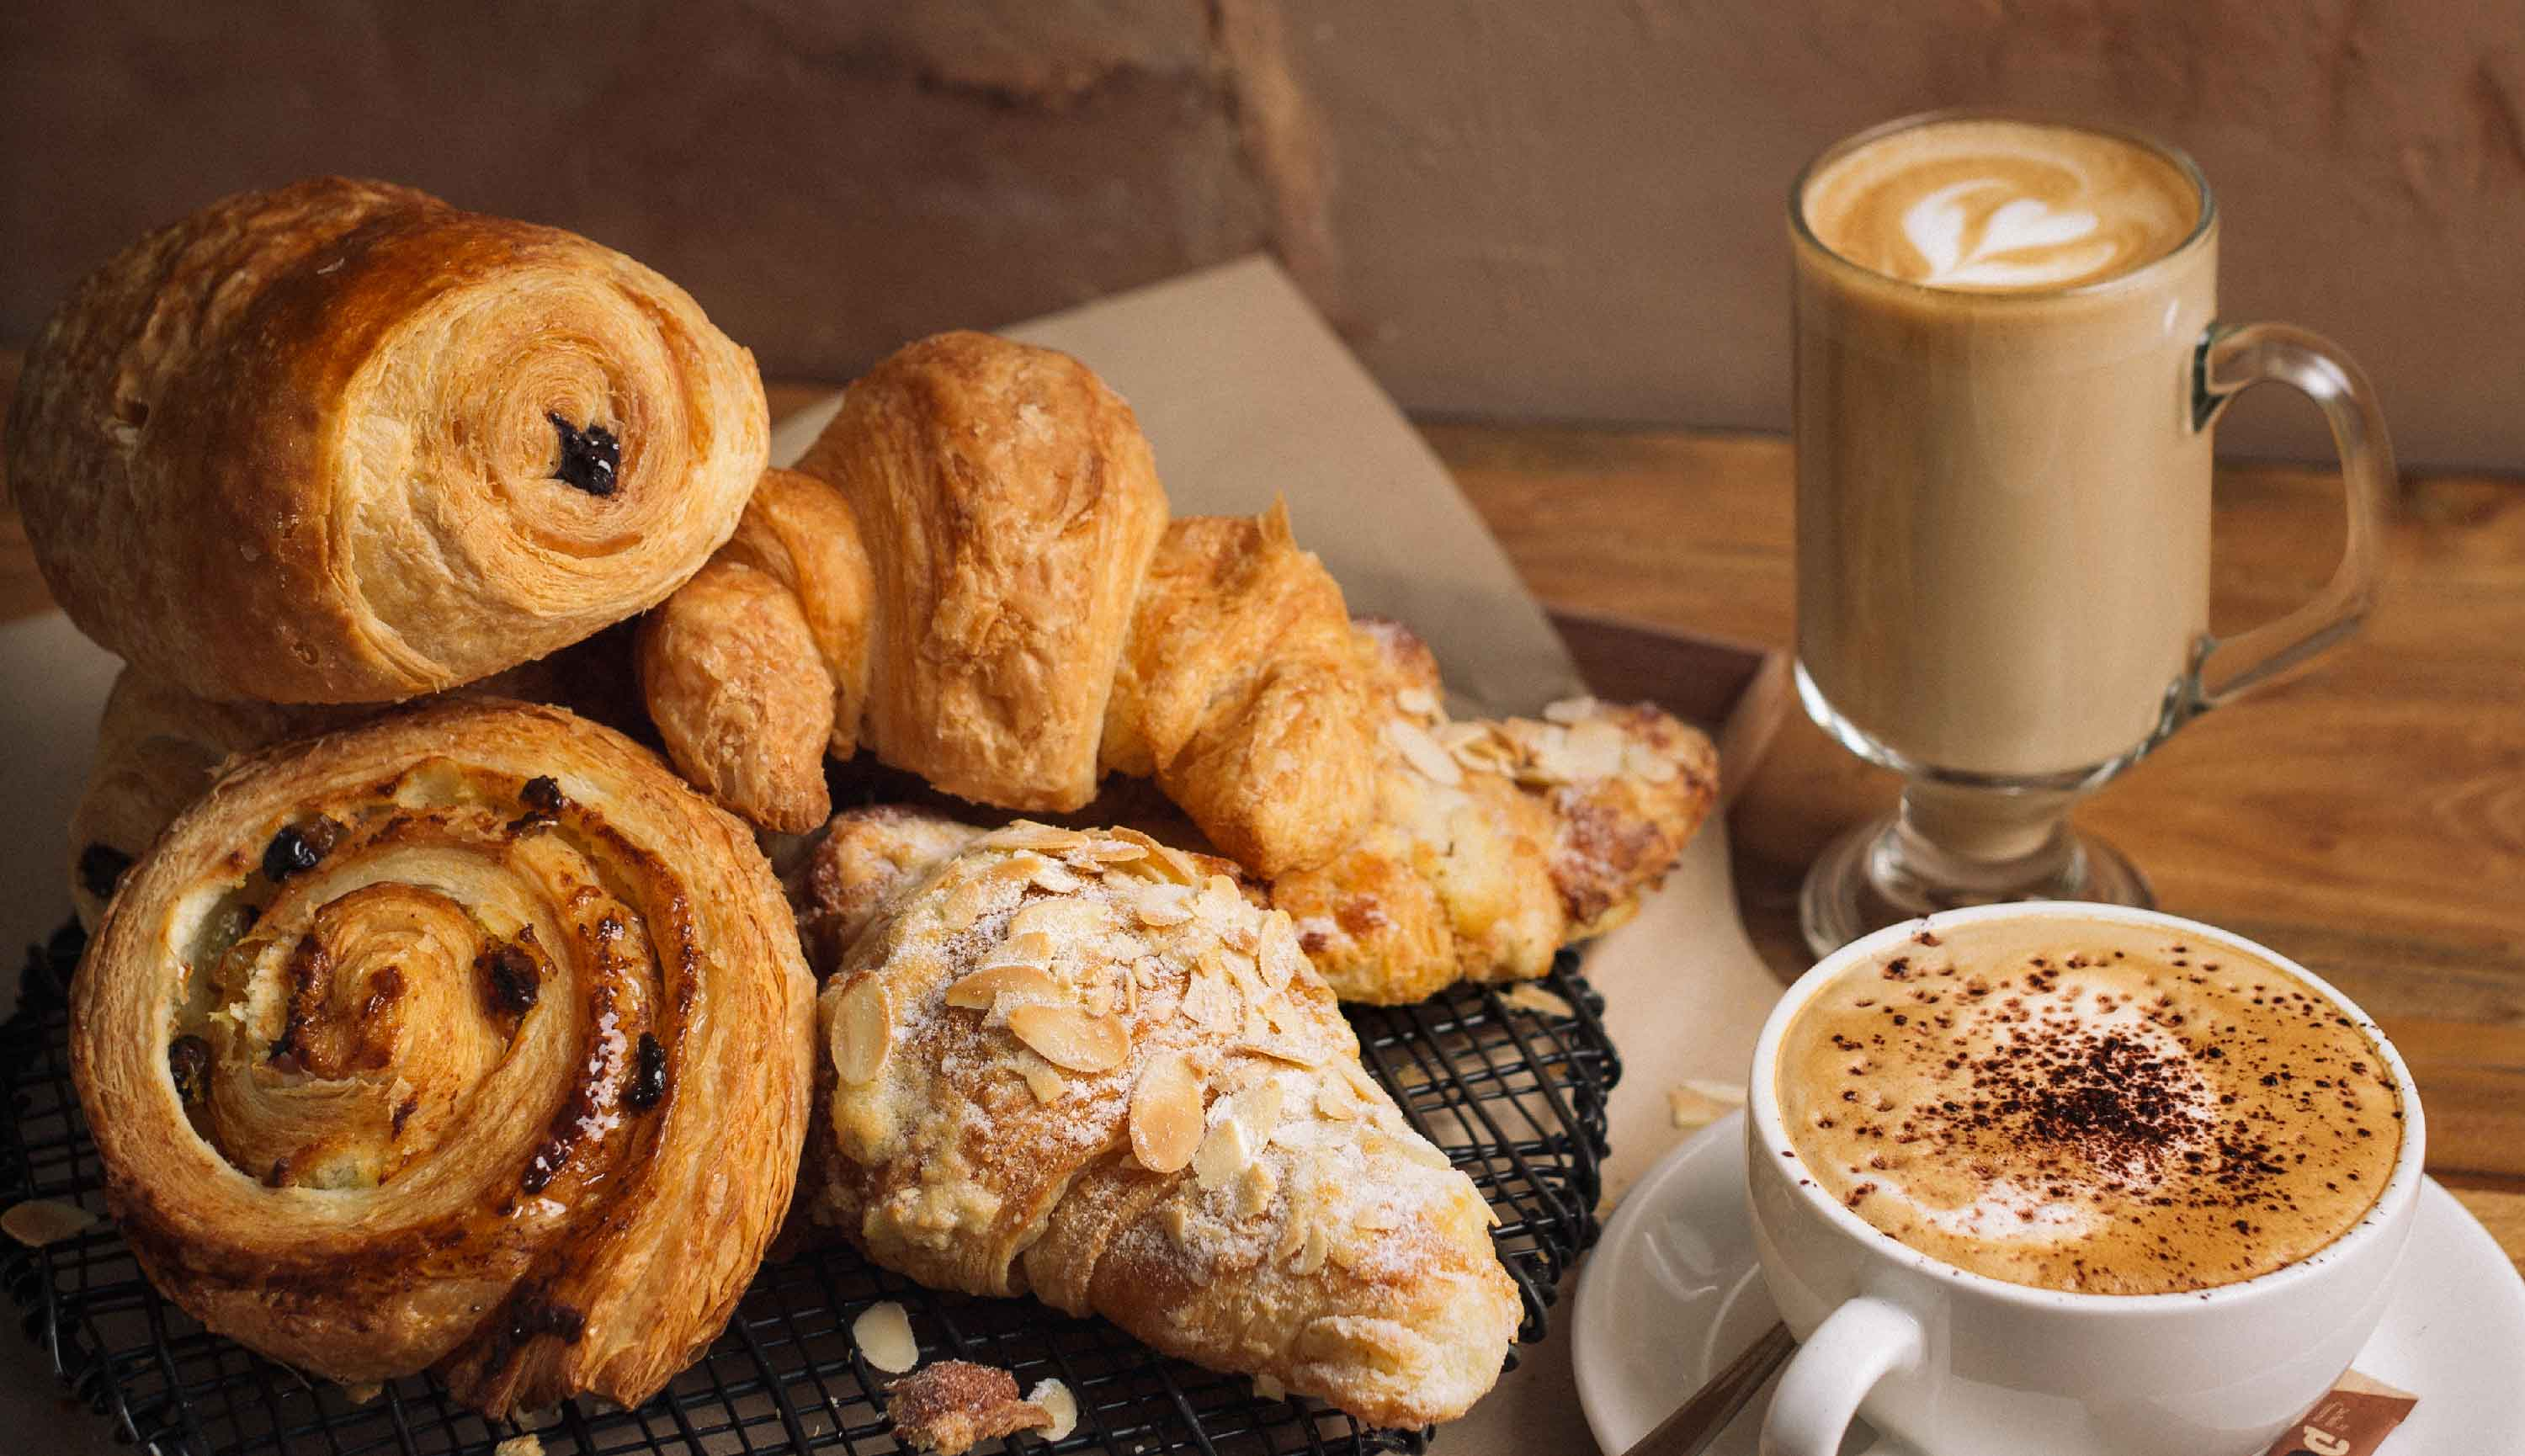 Dapaolo Signature Dishes - Fresh Pastries with Italian Coffee